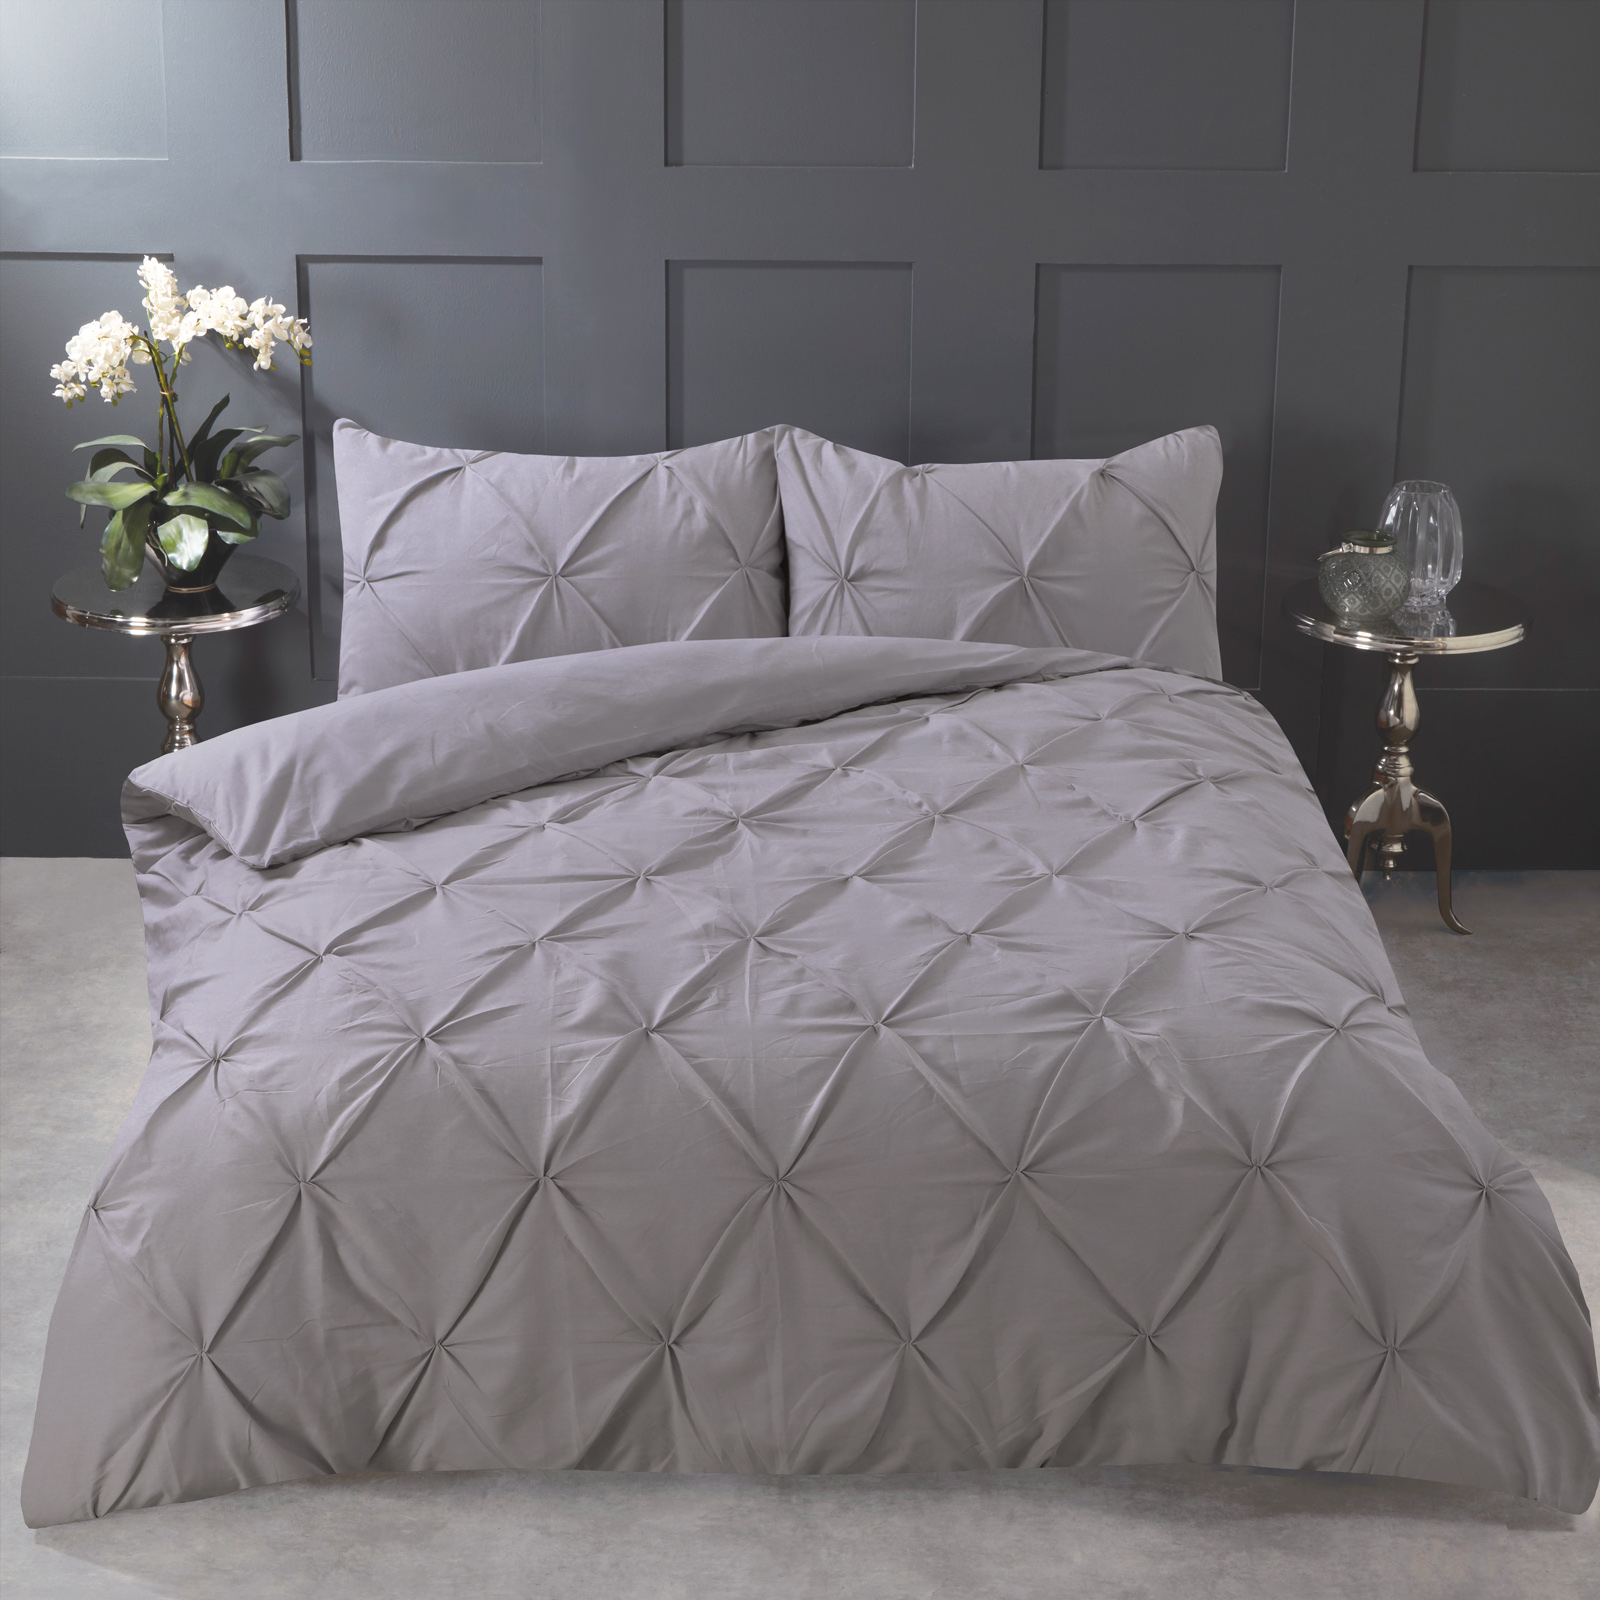 Highams-Pintuck-Pleated-Duvet-Cover-with-Pillowcase-Bedding-Set-Charcoal-White thumbnail 16